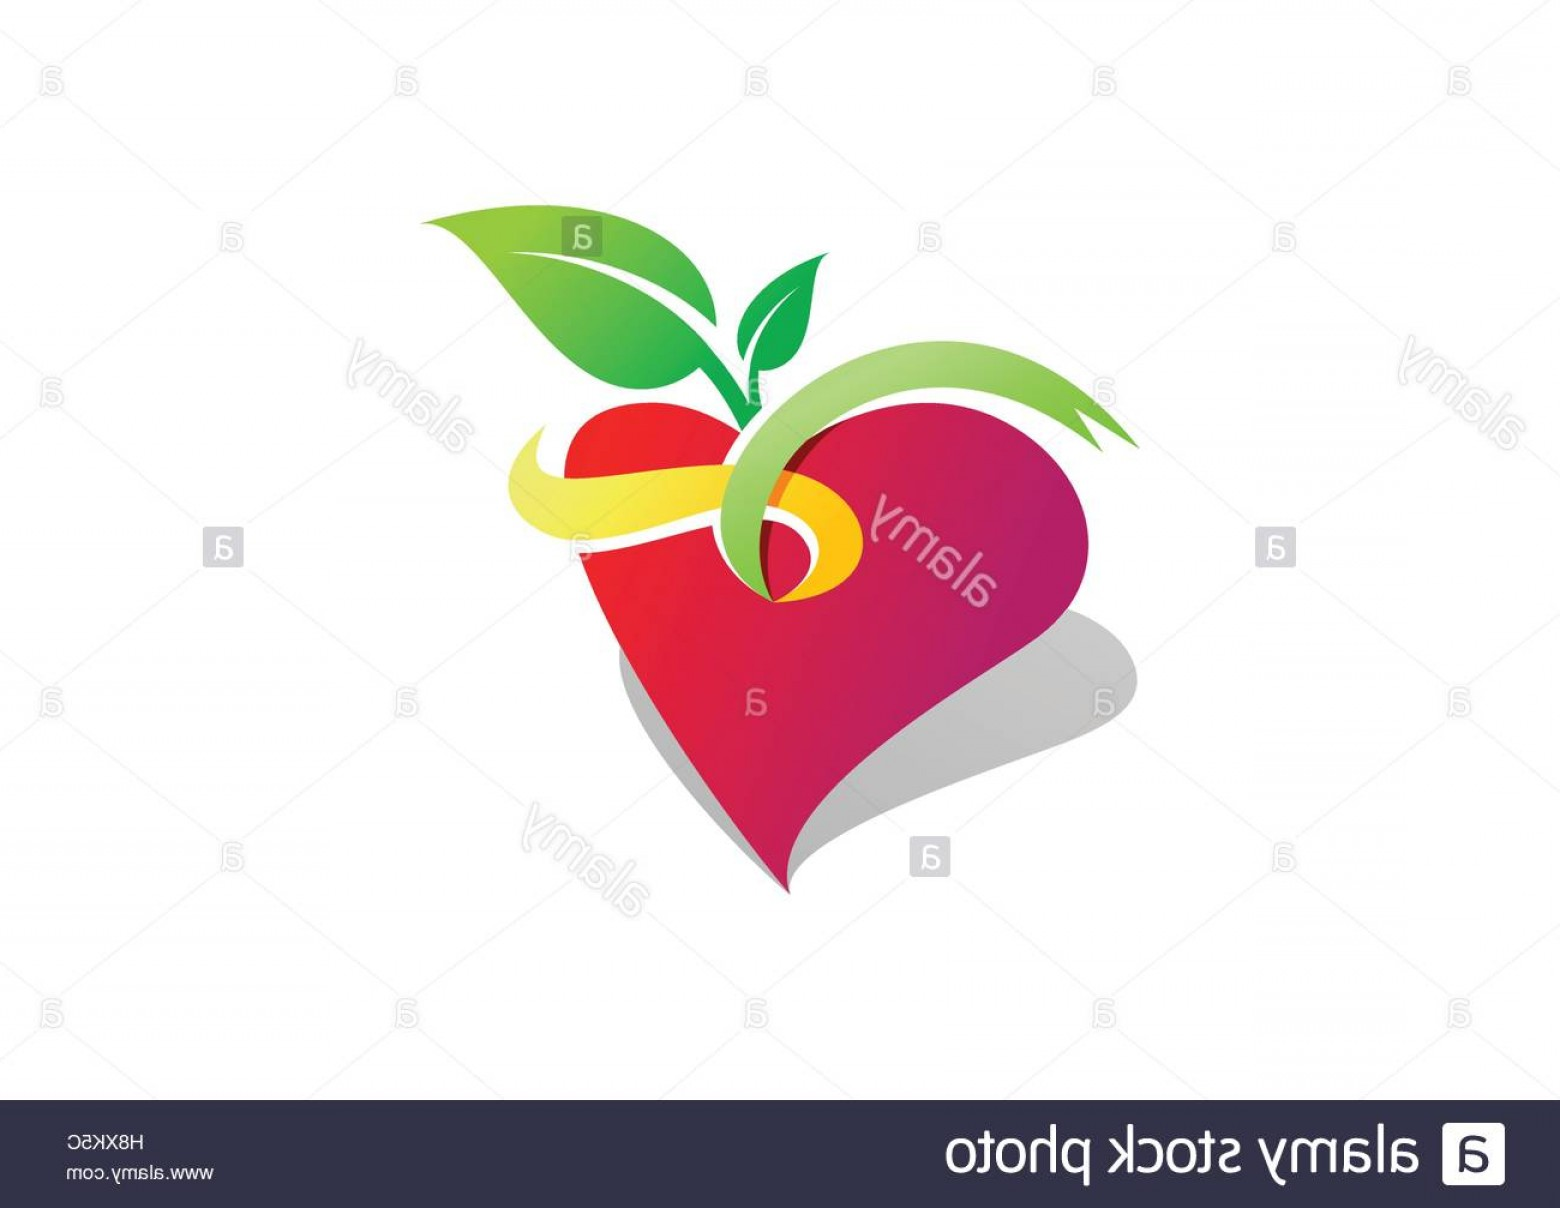 Red Apple Vector Logo: Stock Photo Fruit Heart Wellness Logo Health Red Apple Heart Logotype Symbol Icon